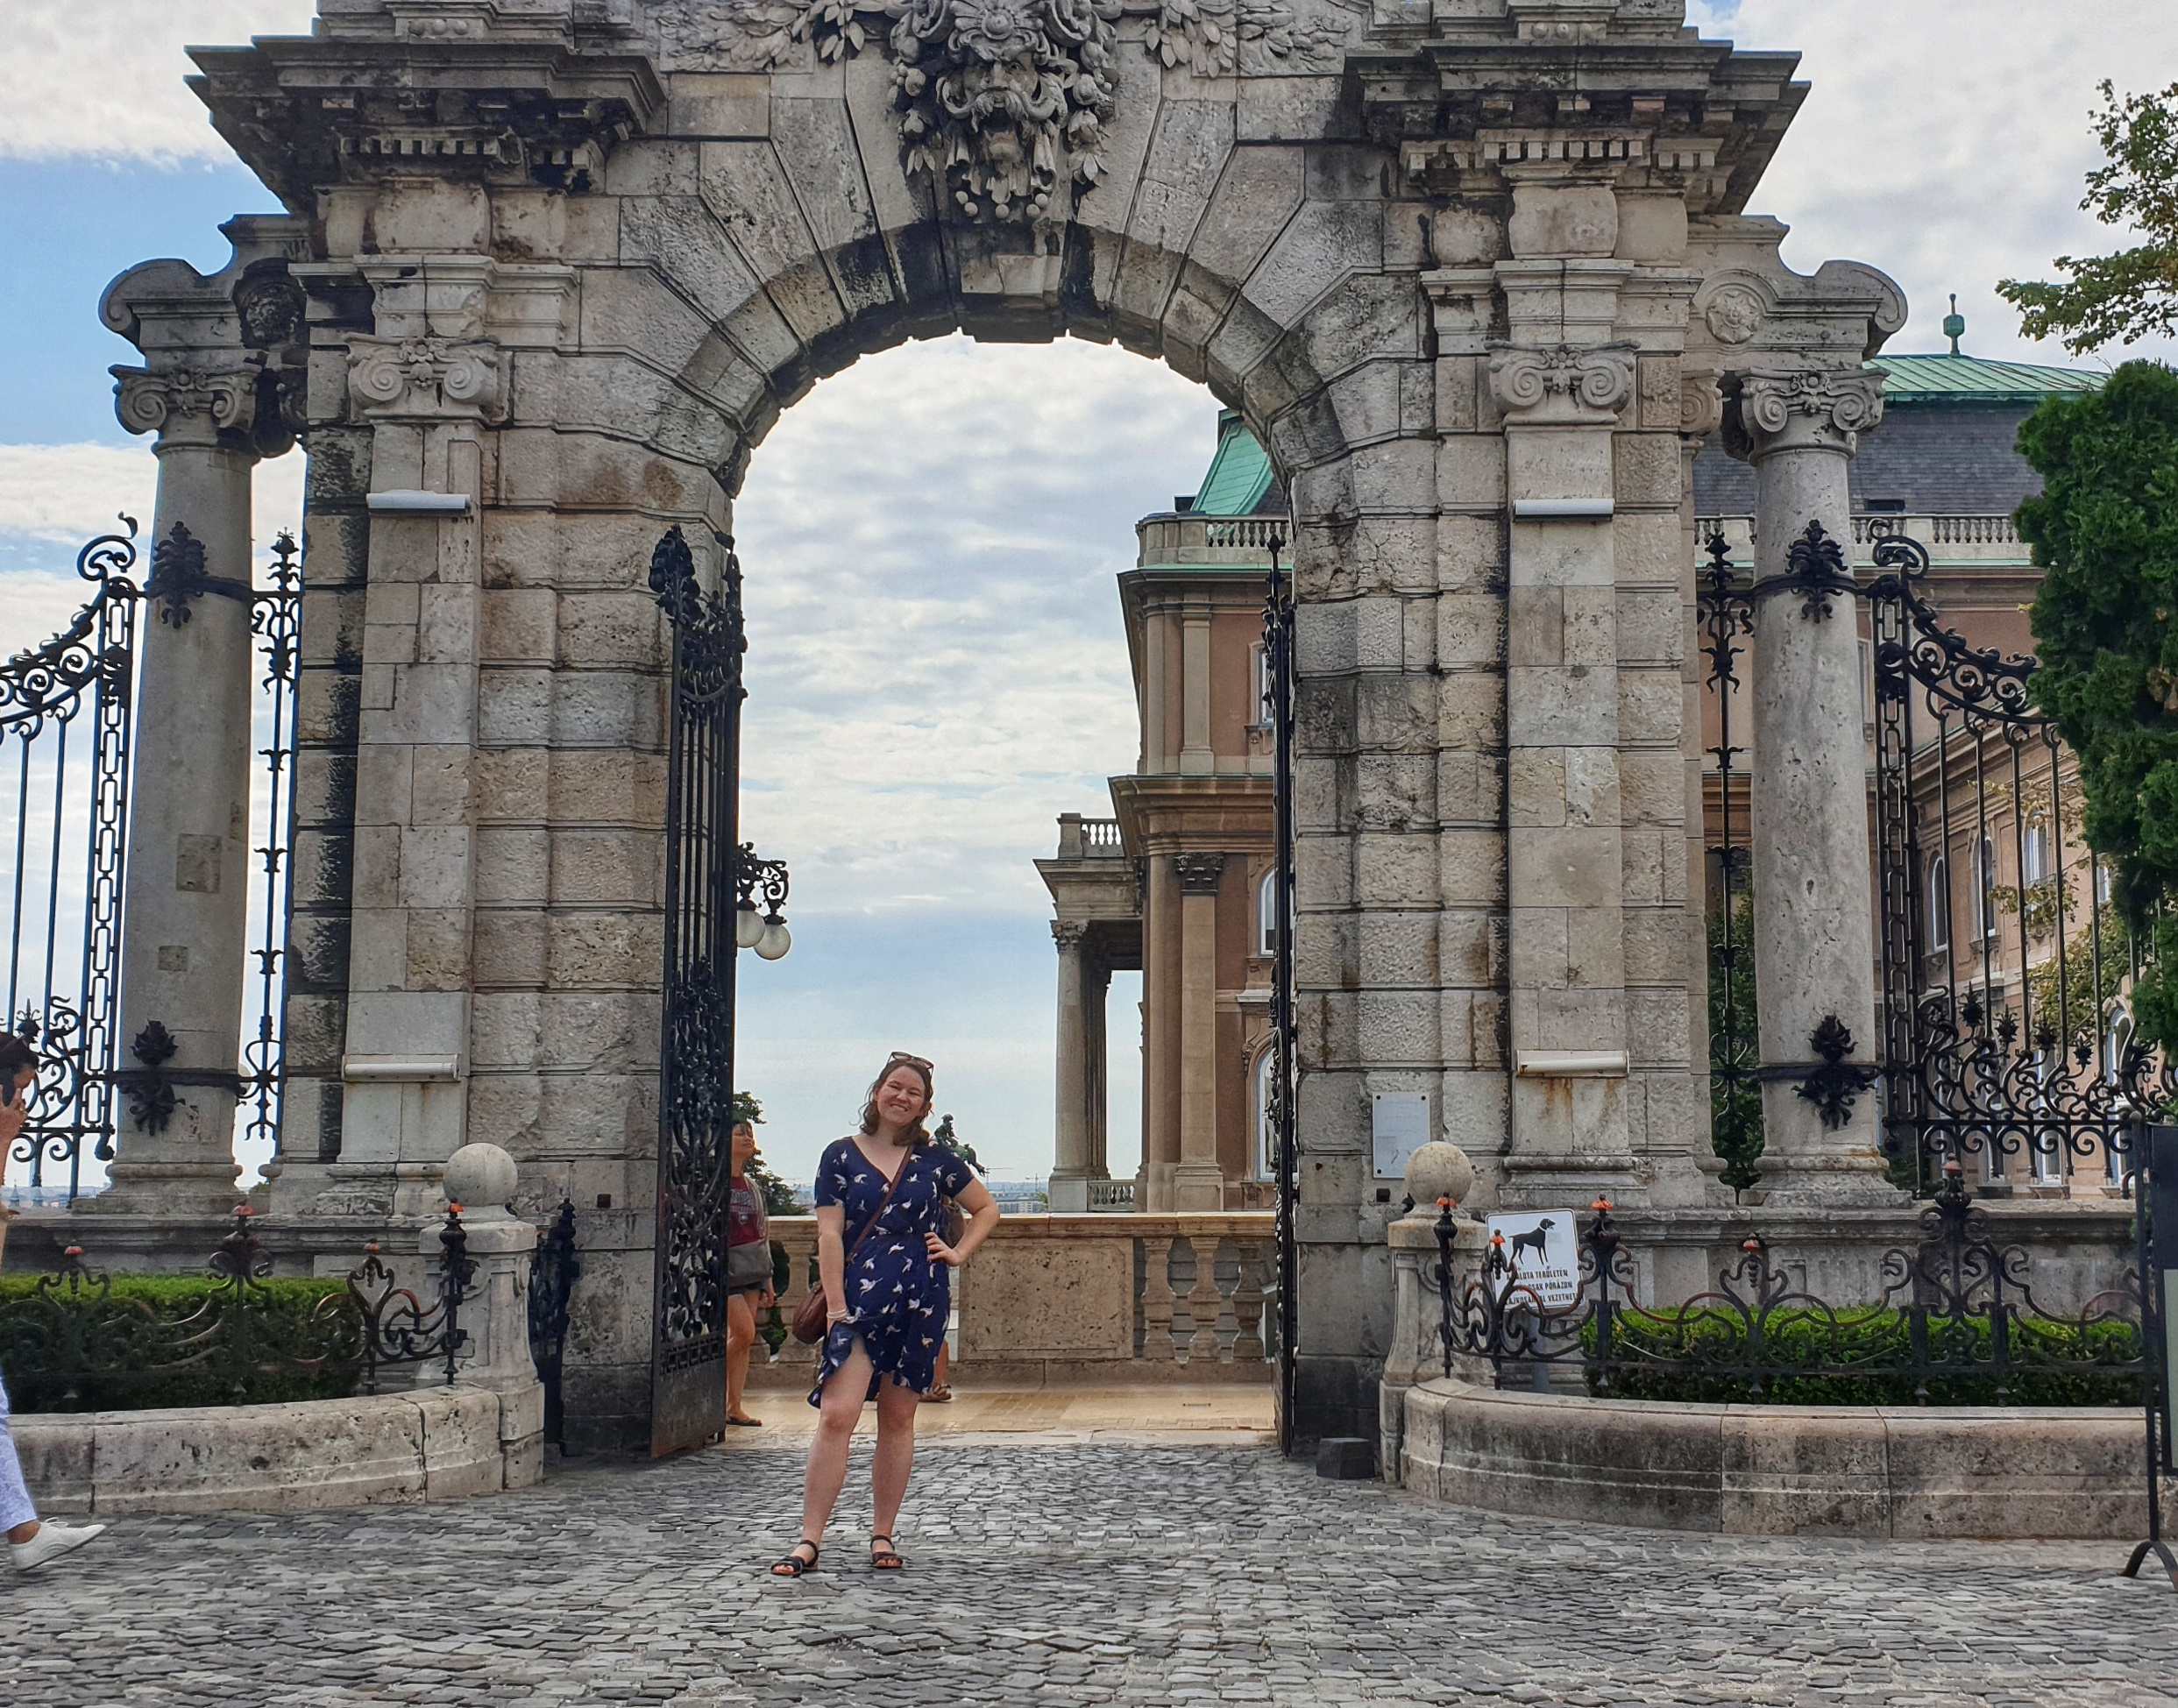 Chasing Emma at the entrance of Buda Castle.